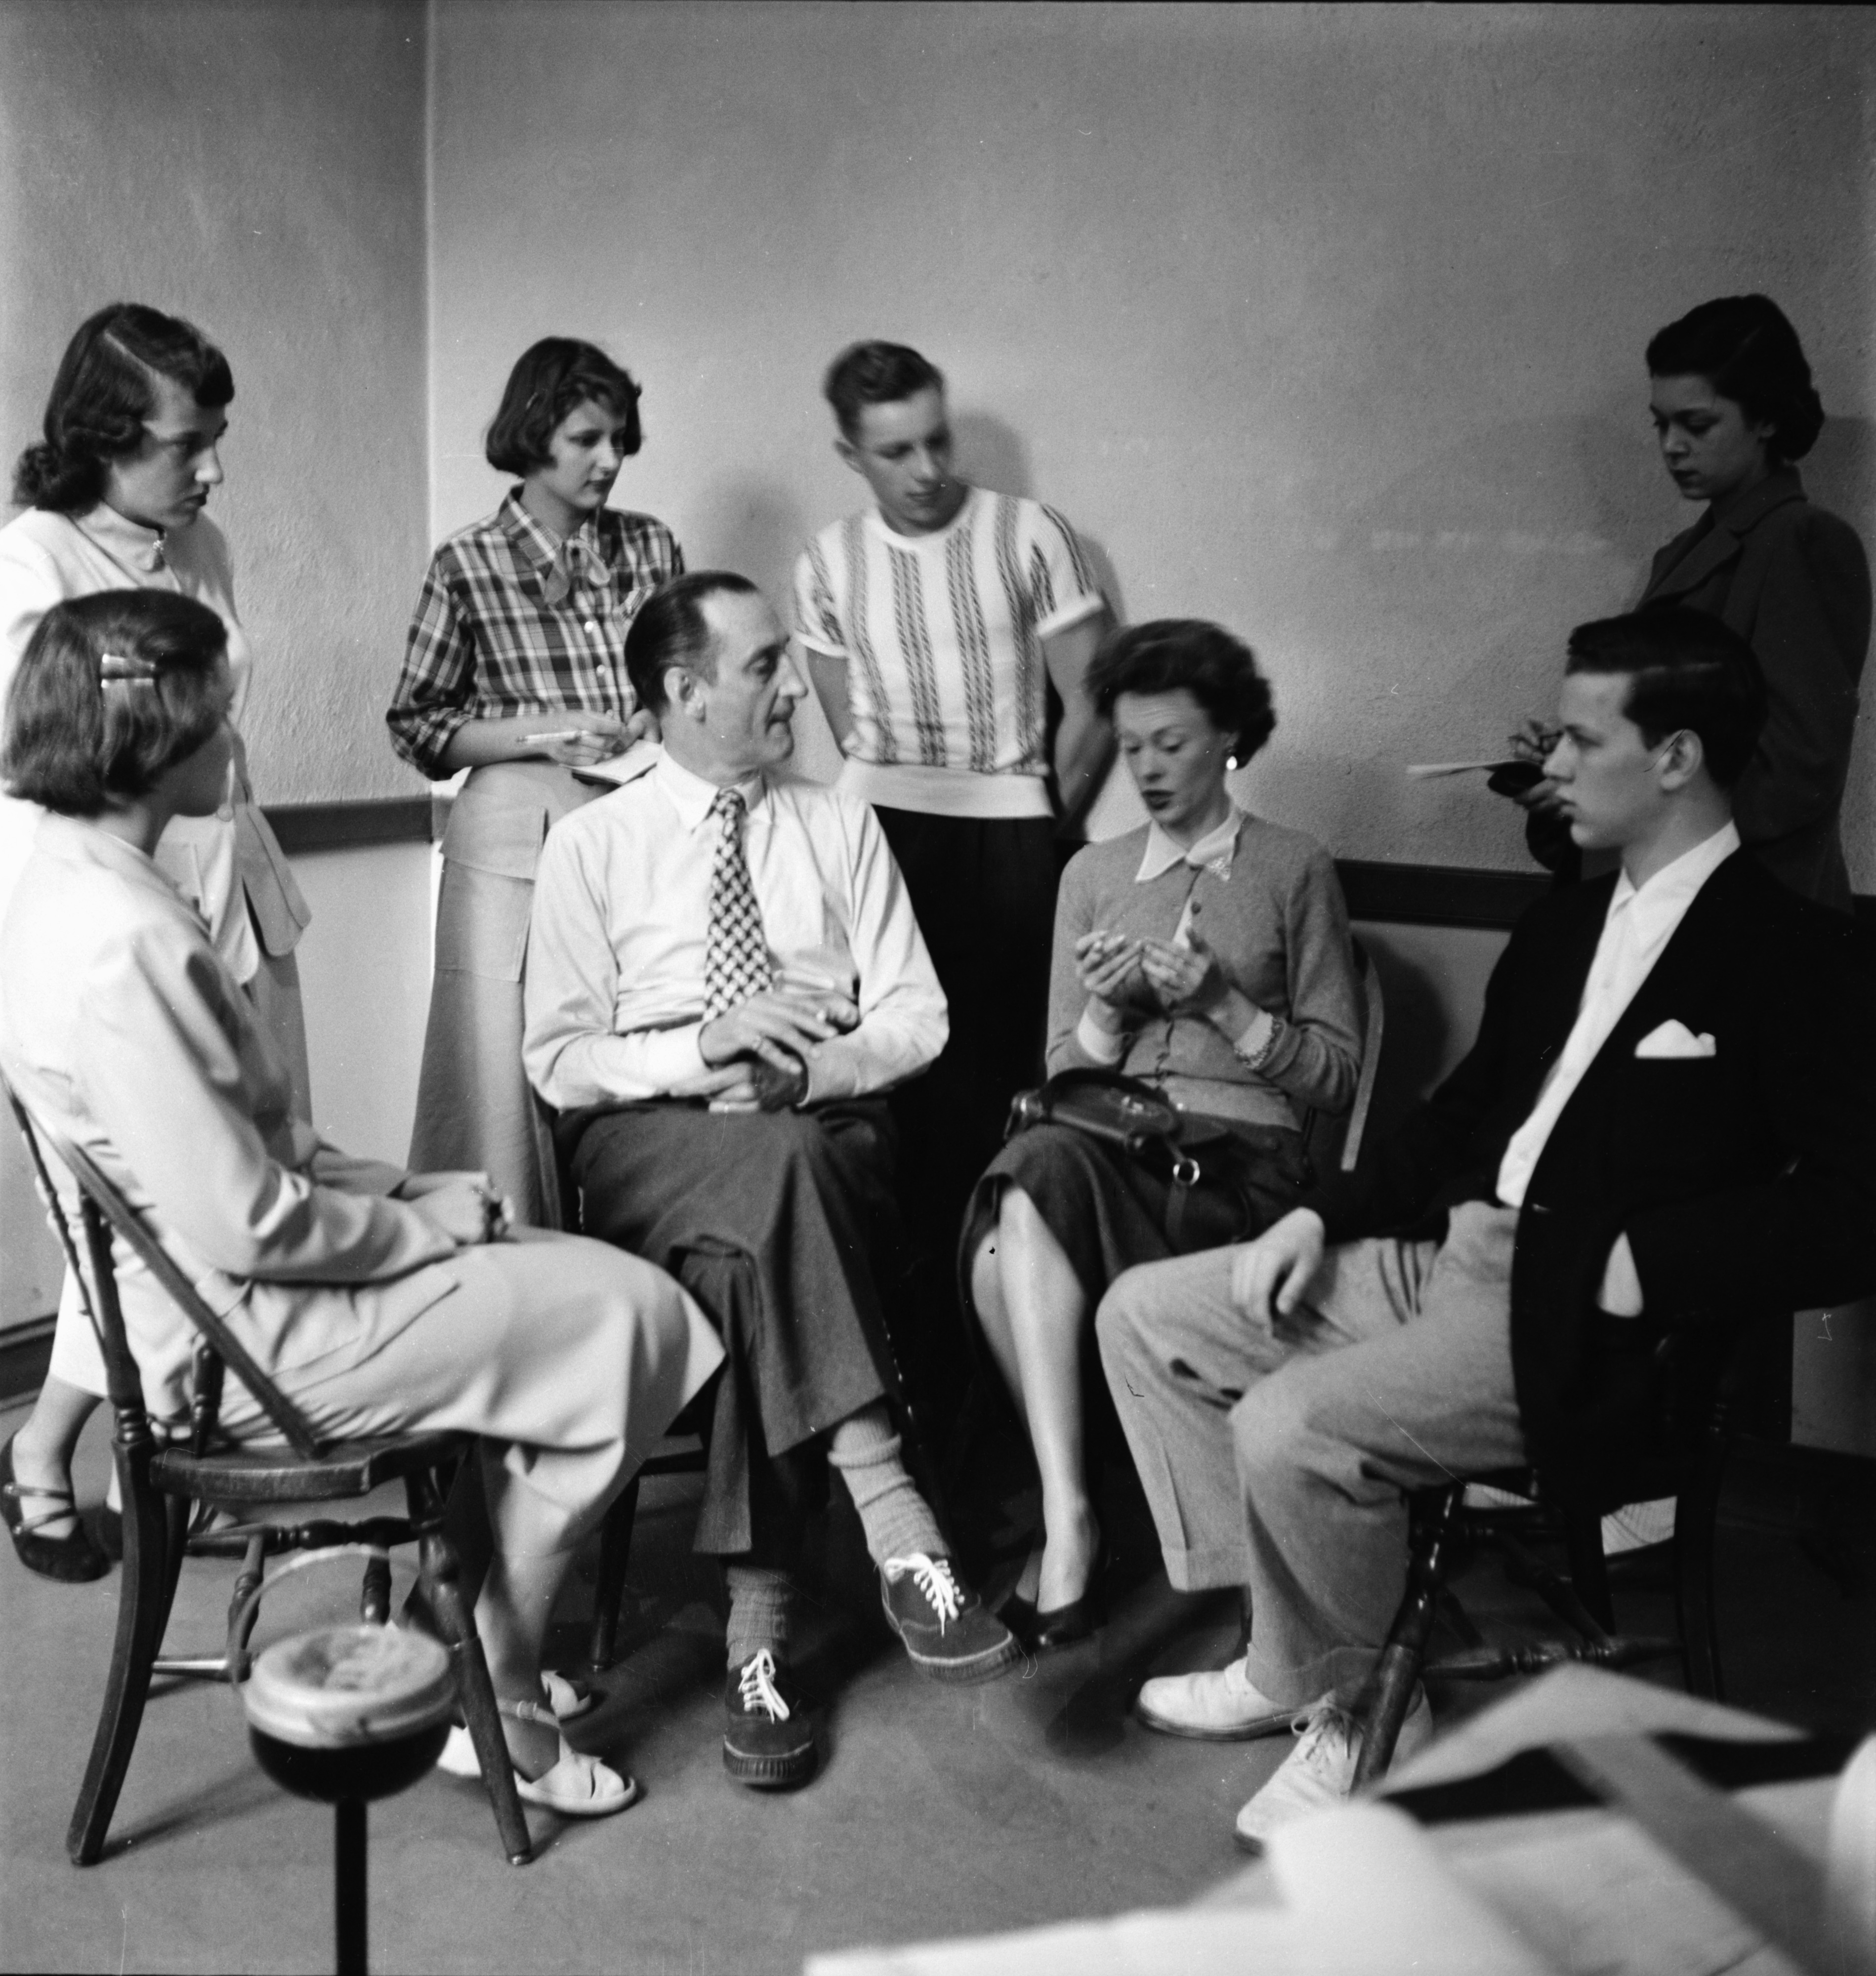 Basil Rathbone & Meg Mundy Interviewed By Ann Arbor High Students, May 1950 image